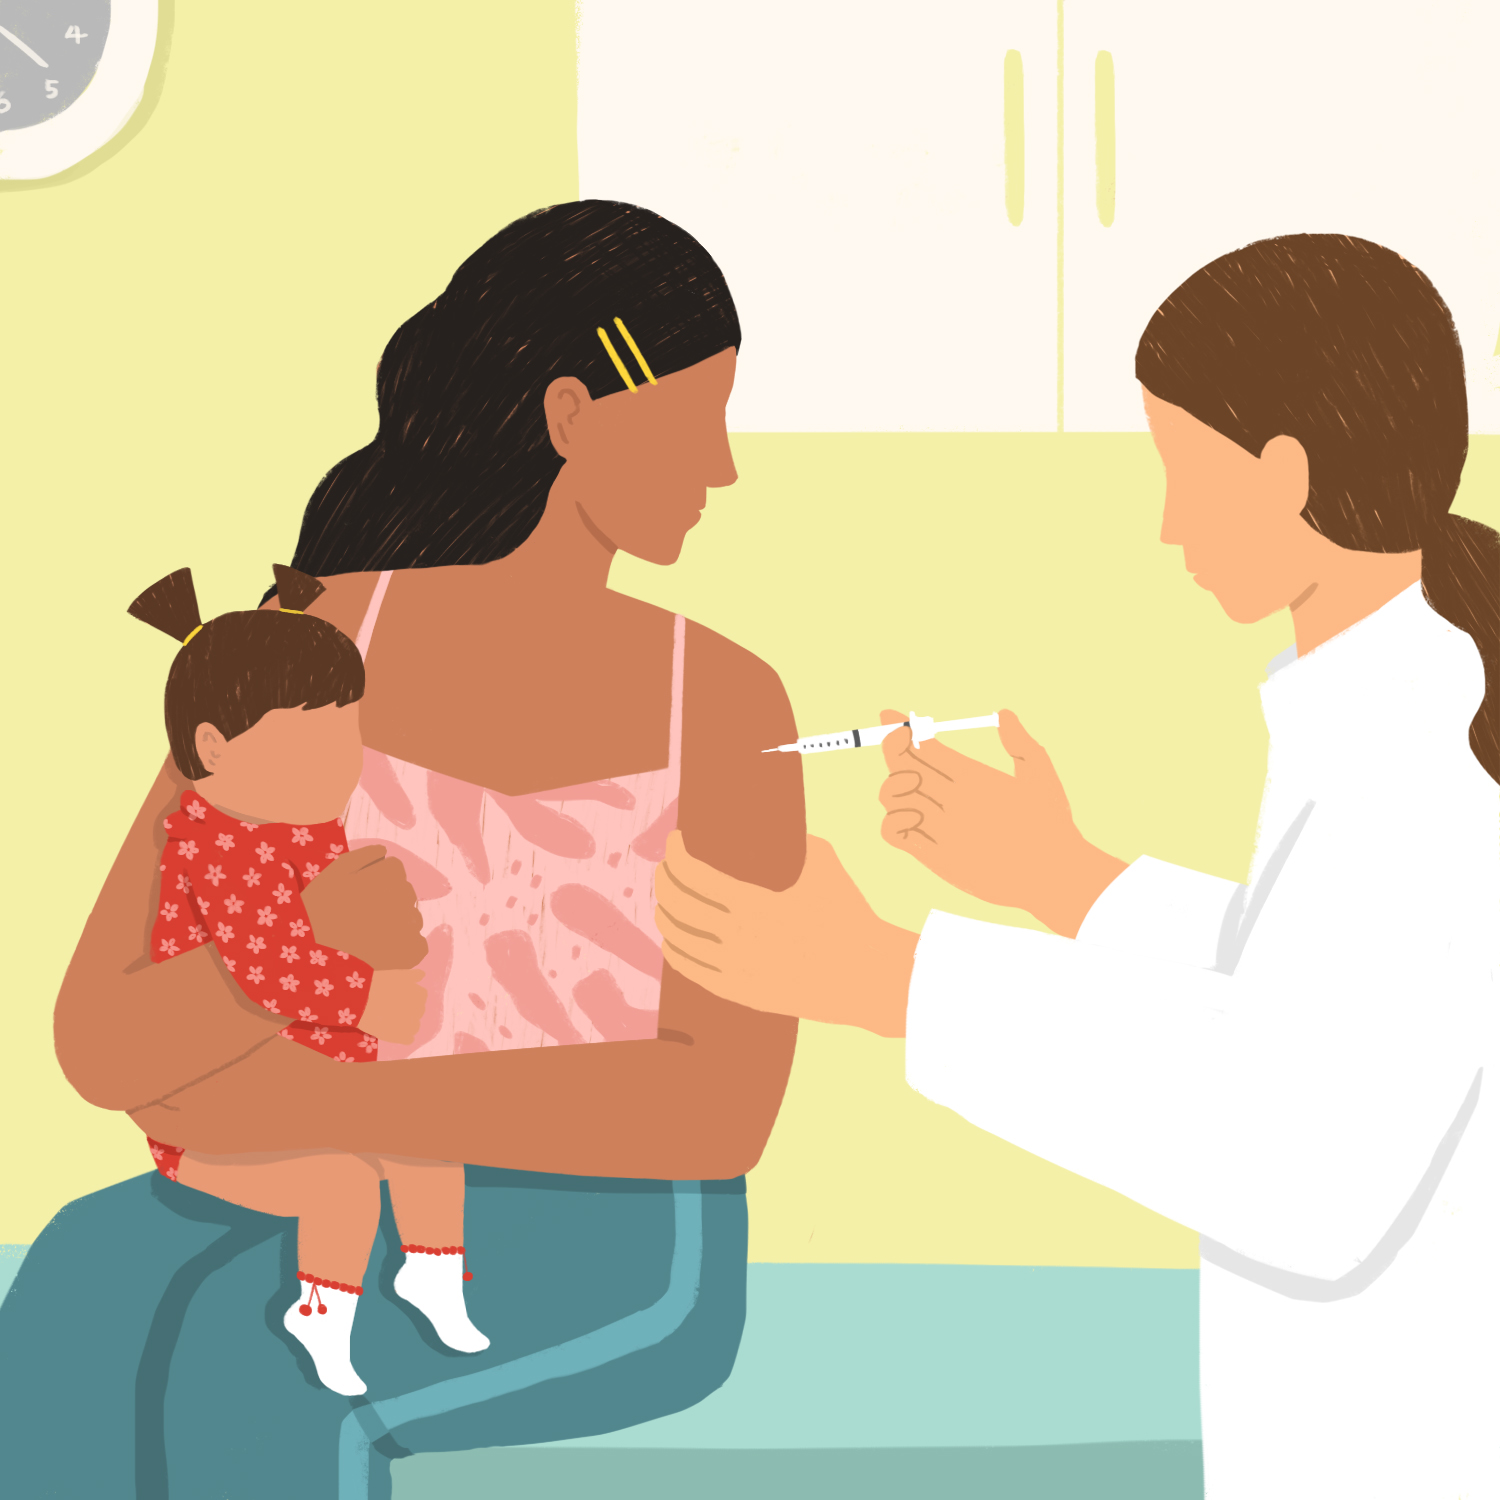 Measles in Adults: Should You Get Another Vaccination?